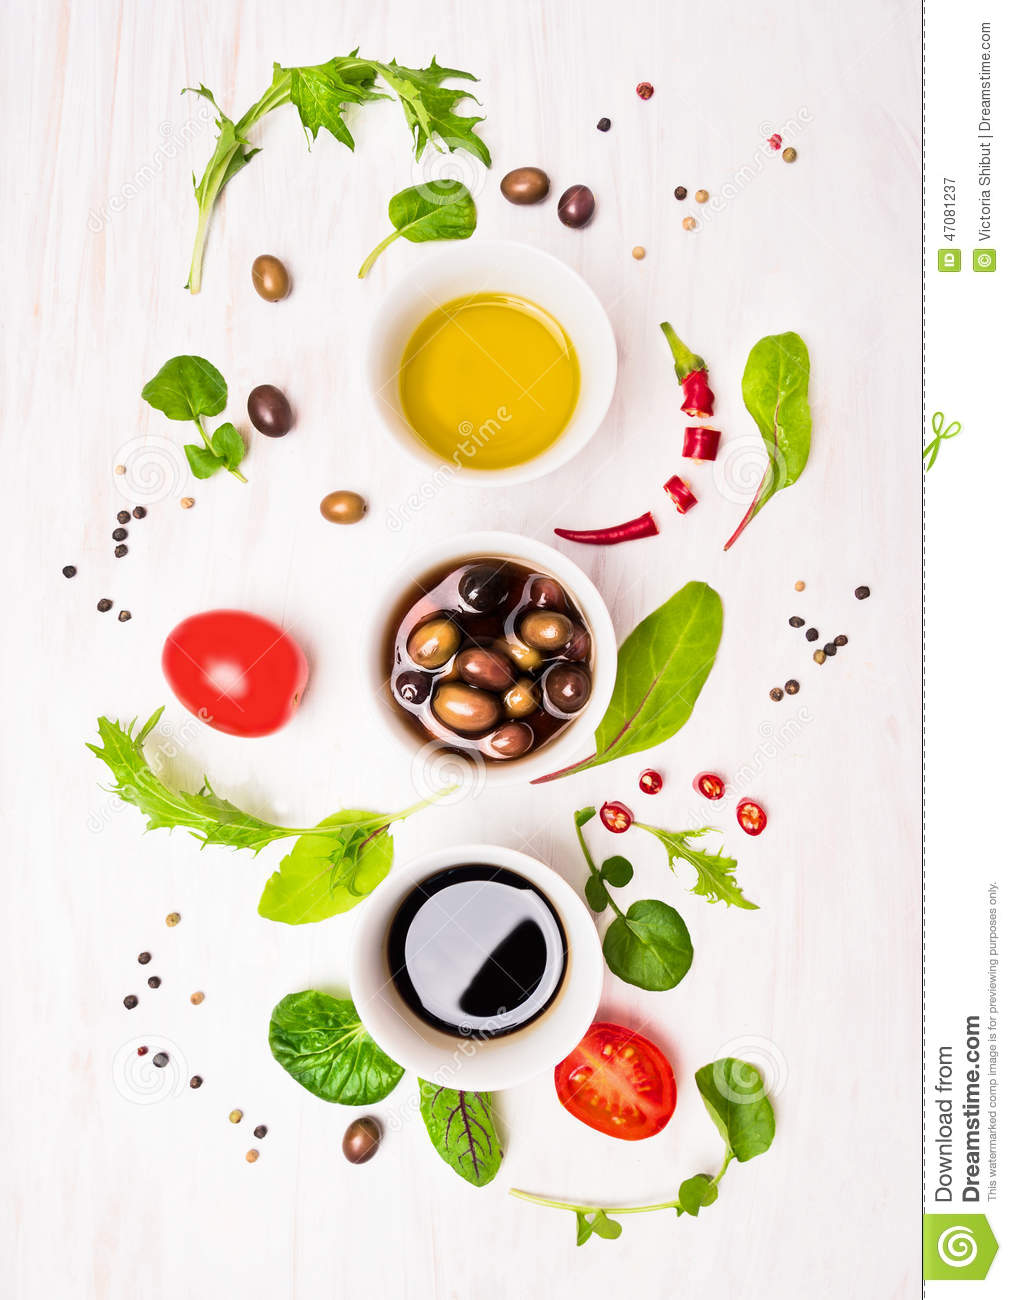 Salad preparation with dressings,olives, wild herbs leaves, chili, oil and tomatoes